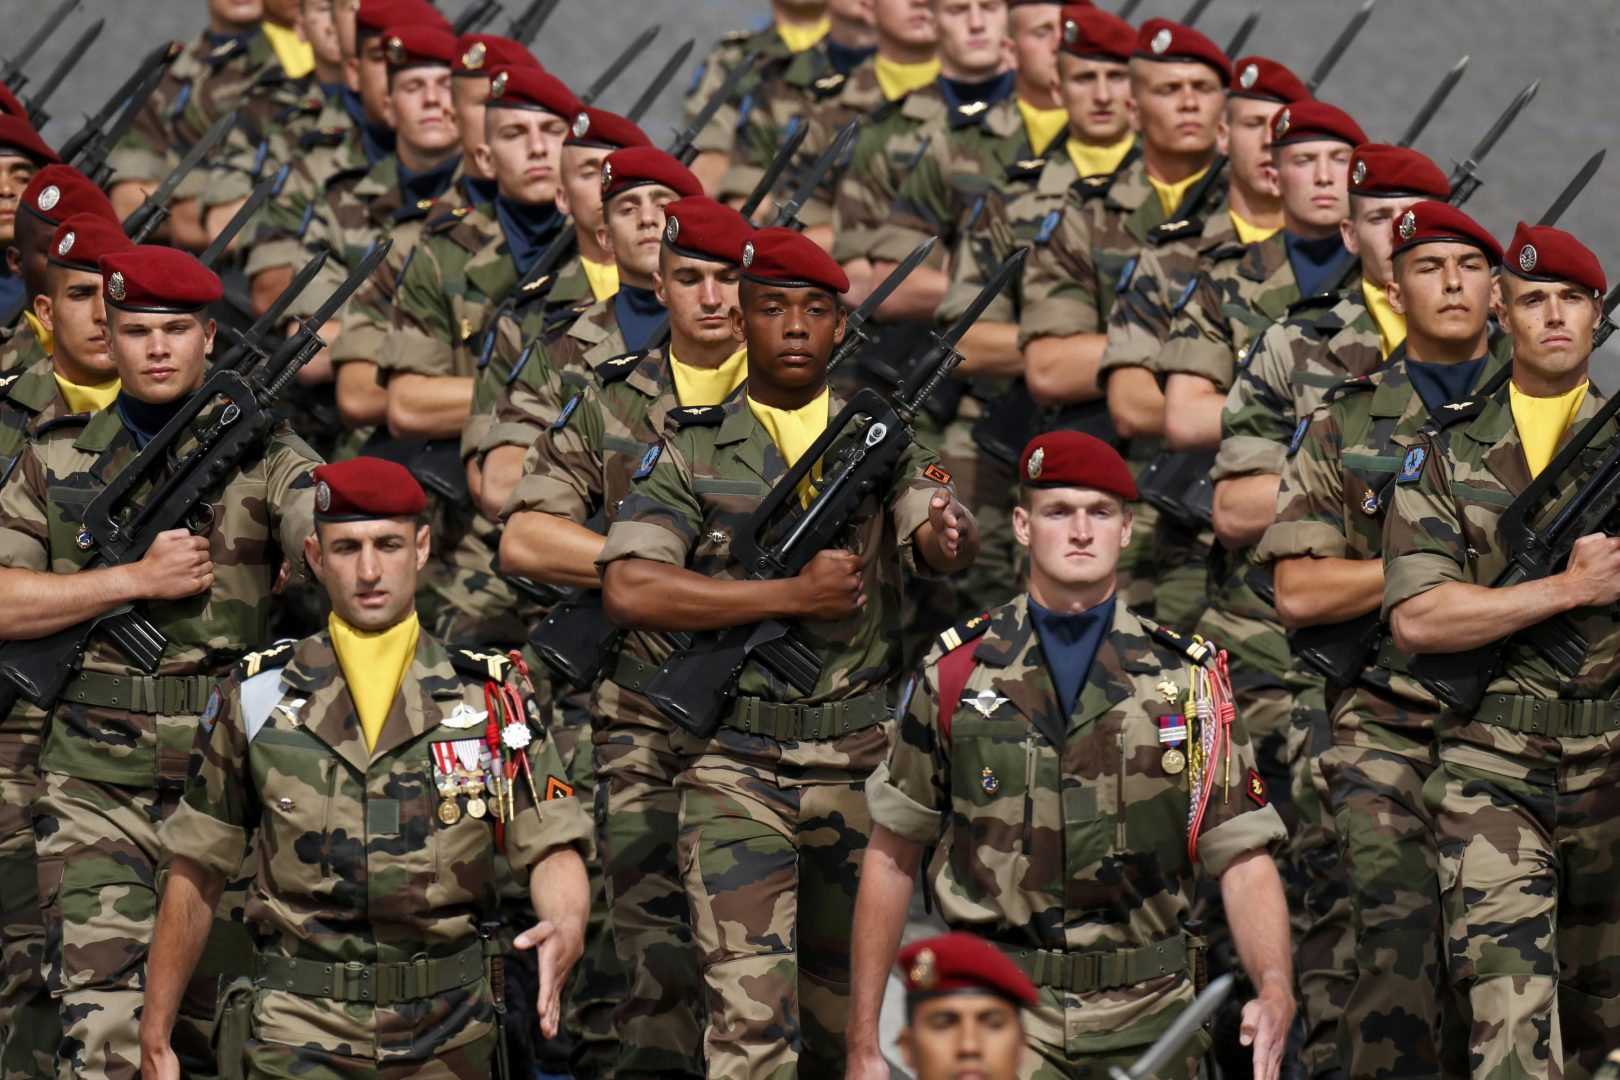 ANALIZA: The European Security Force – a step-by-step approach towards an European Army?